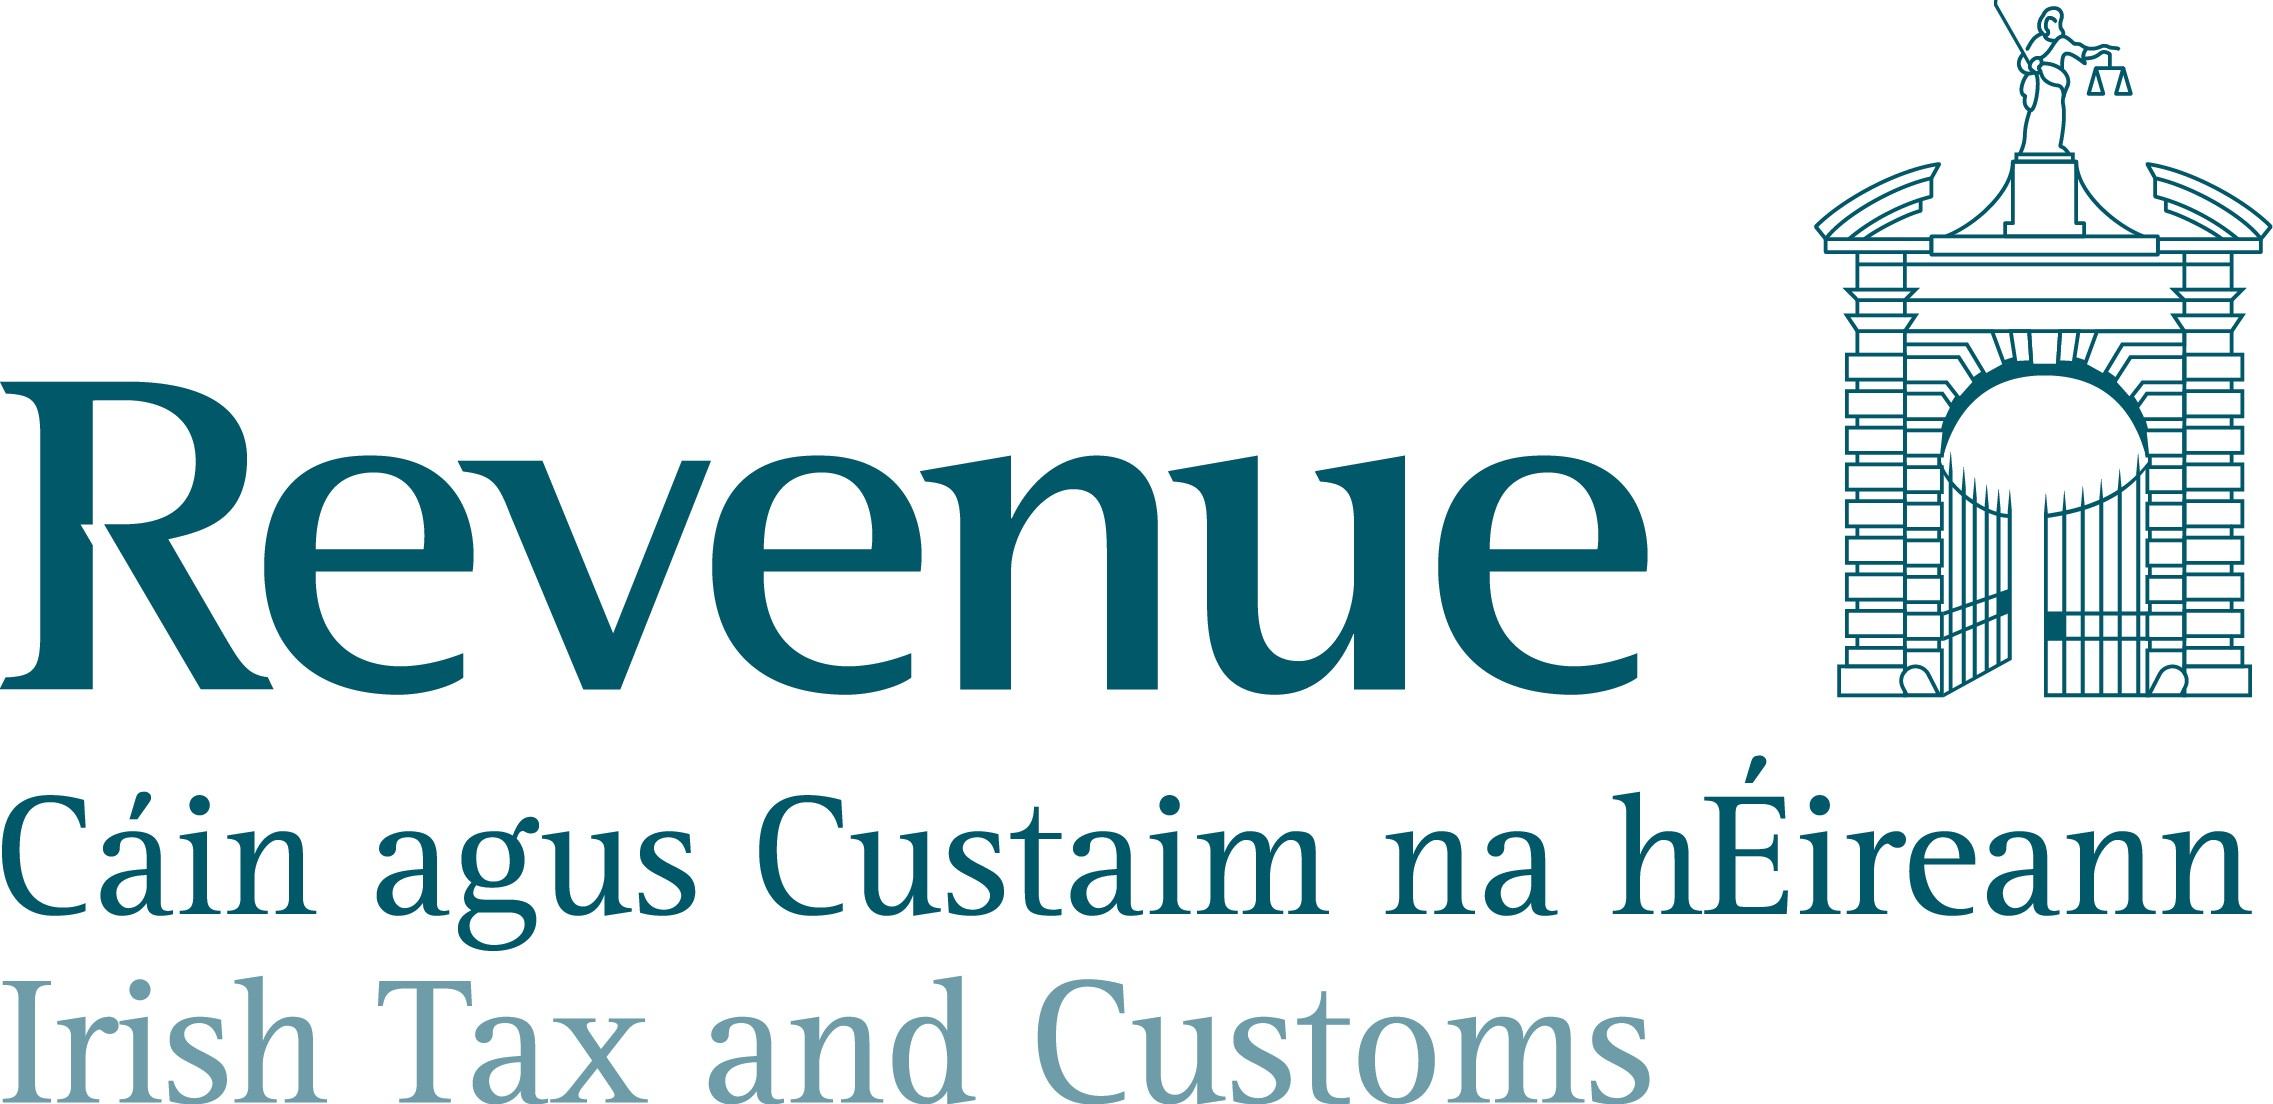 The Revenue will be exhibiting and taking questions from jobseekers on 21st November